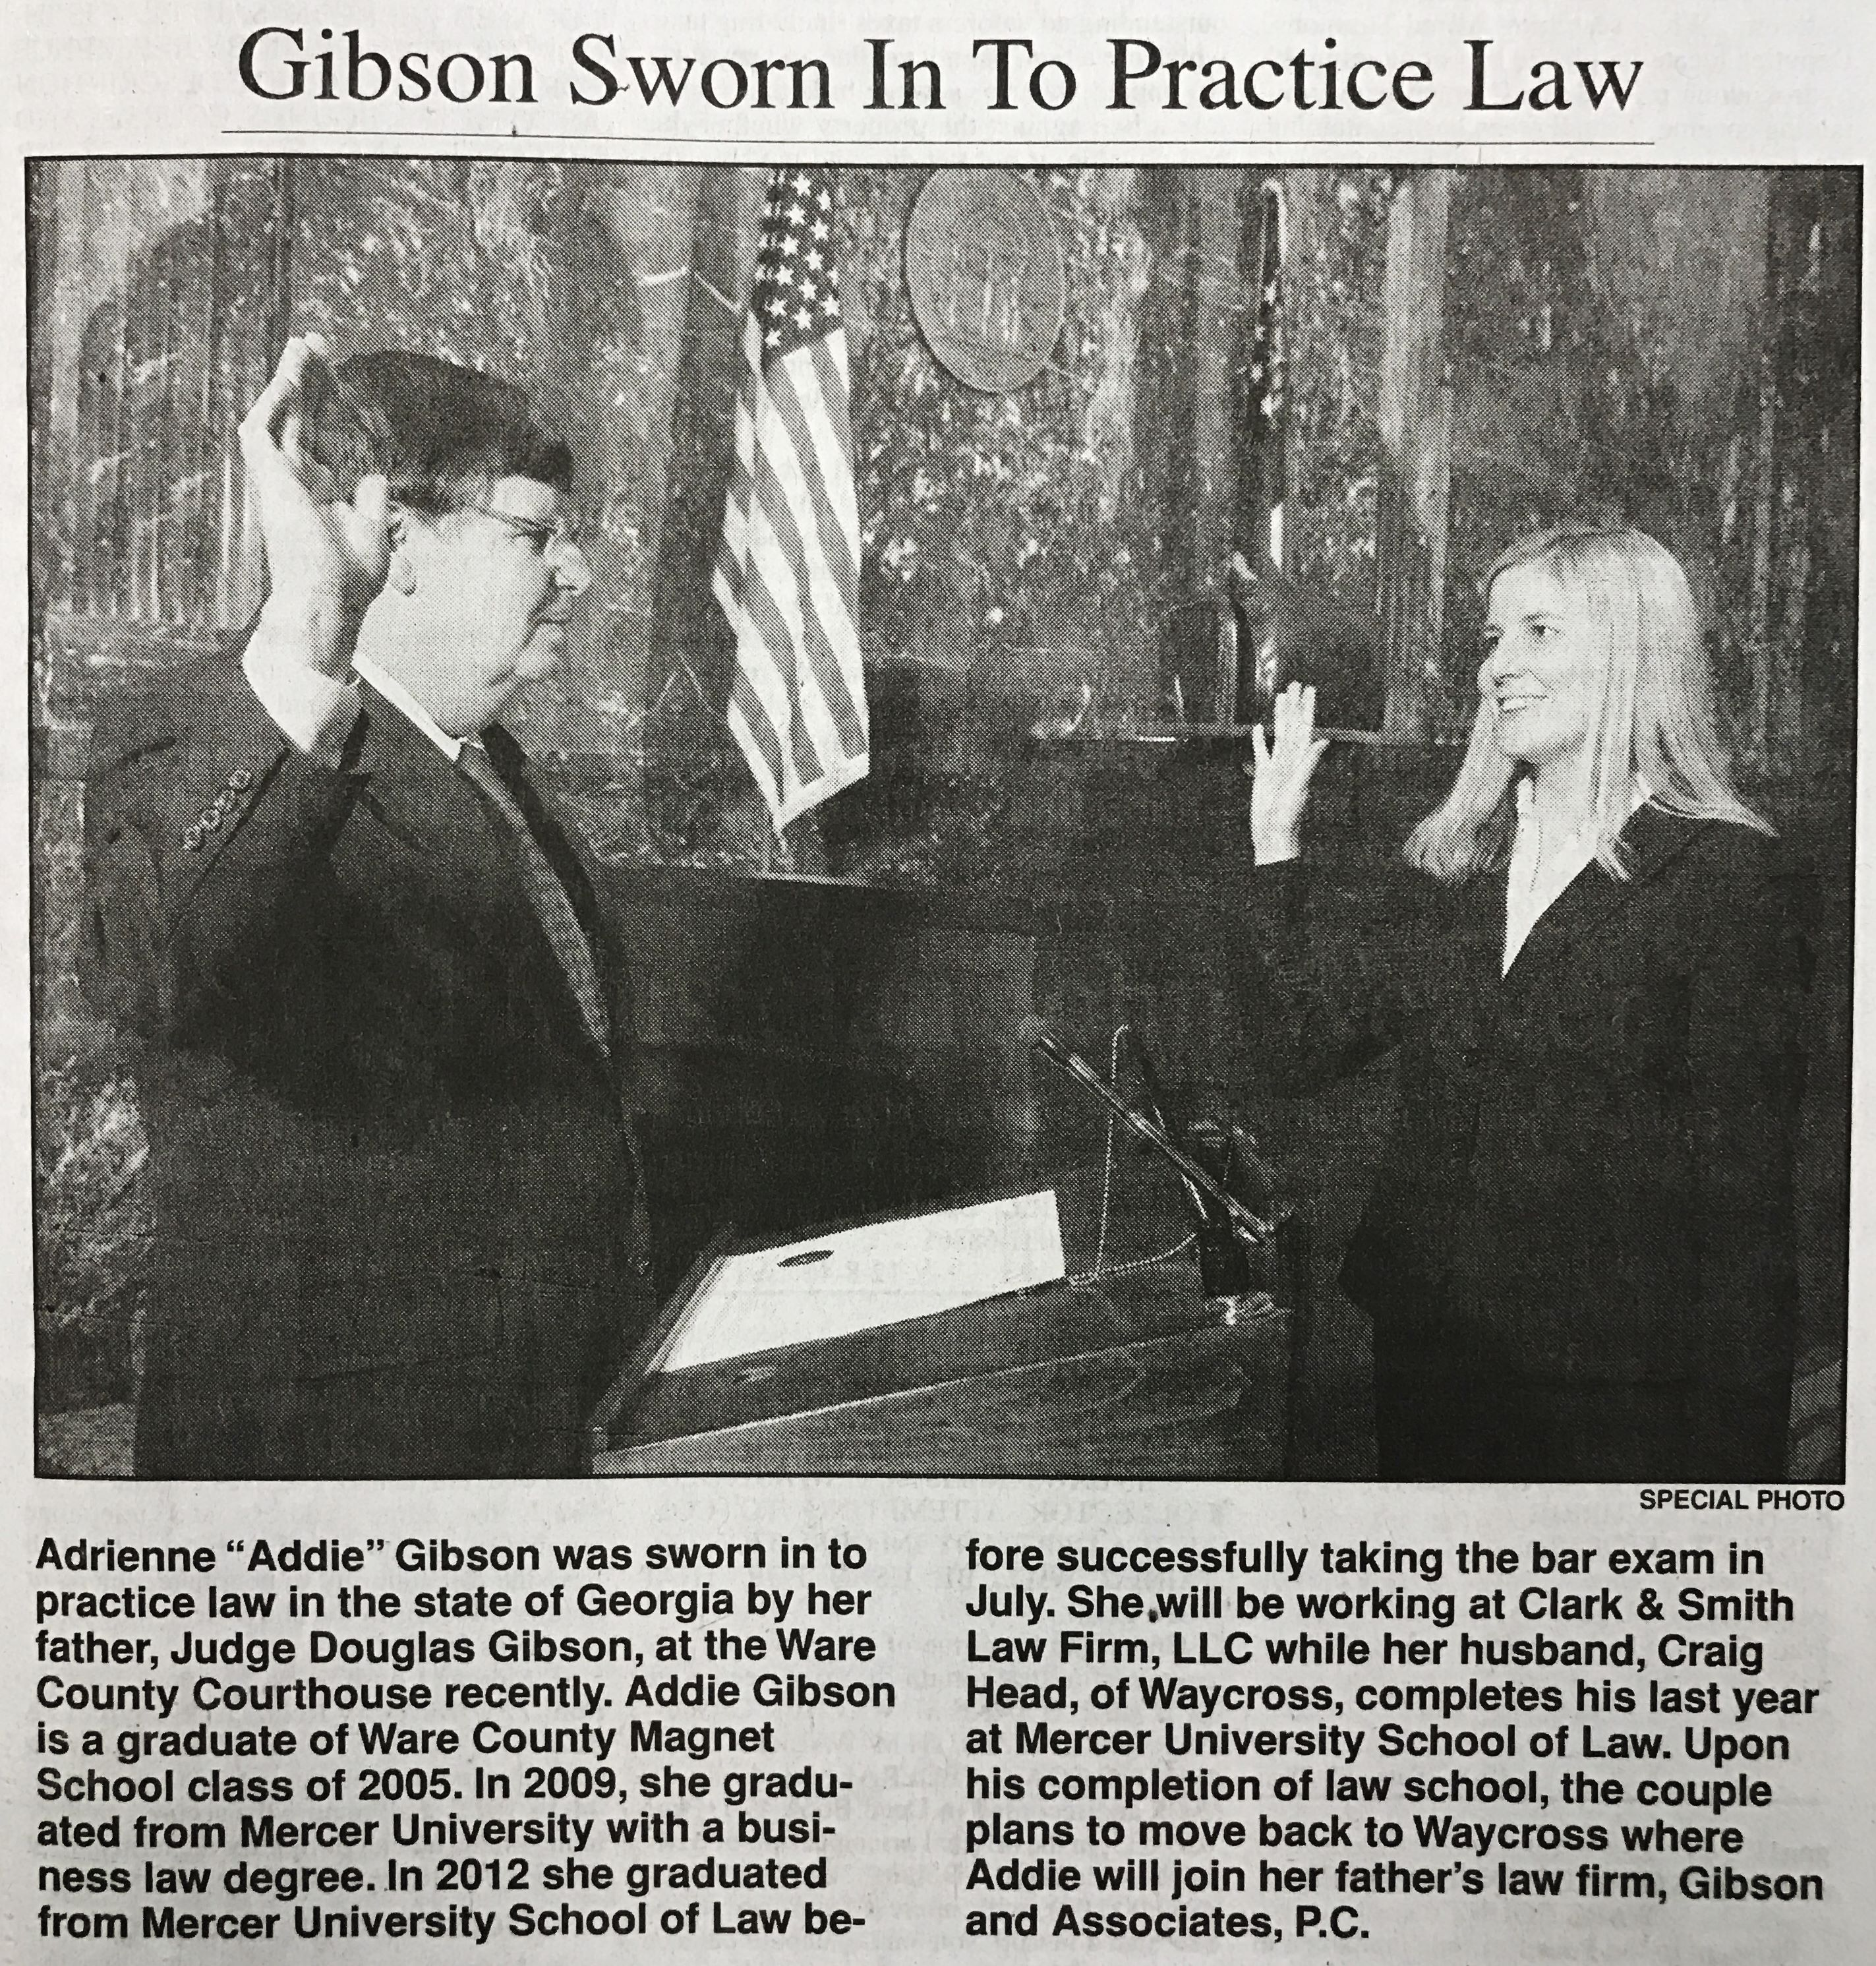 Gibson Sworn In To Practice Law